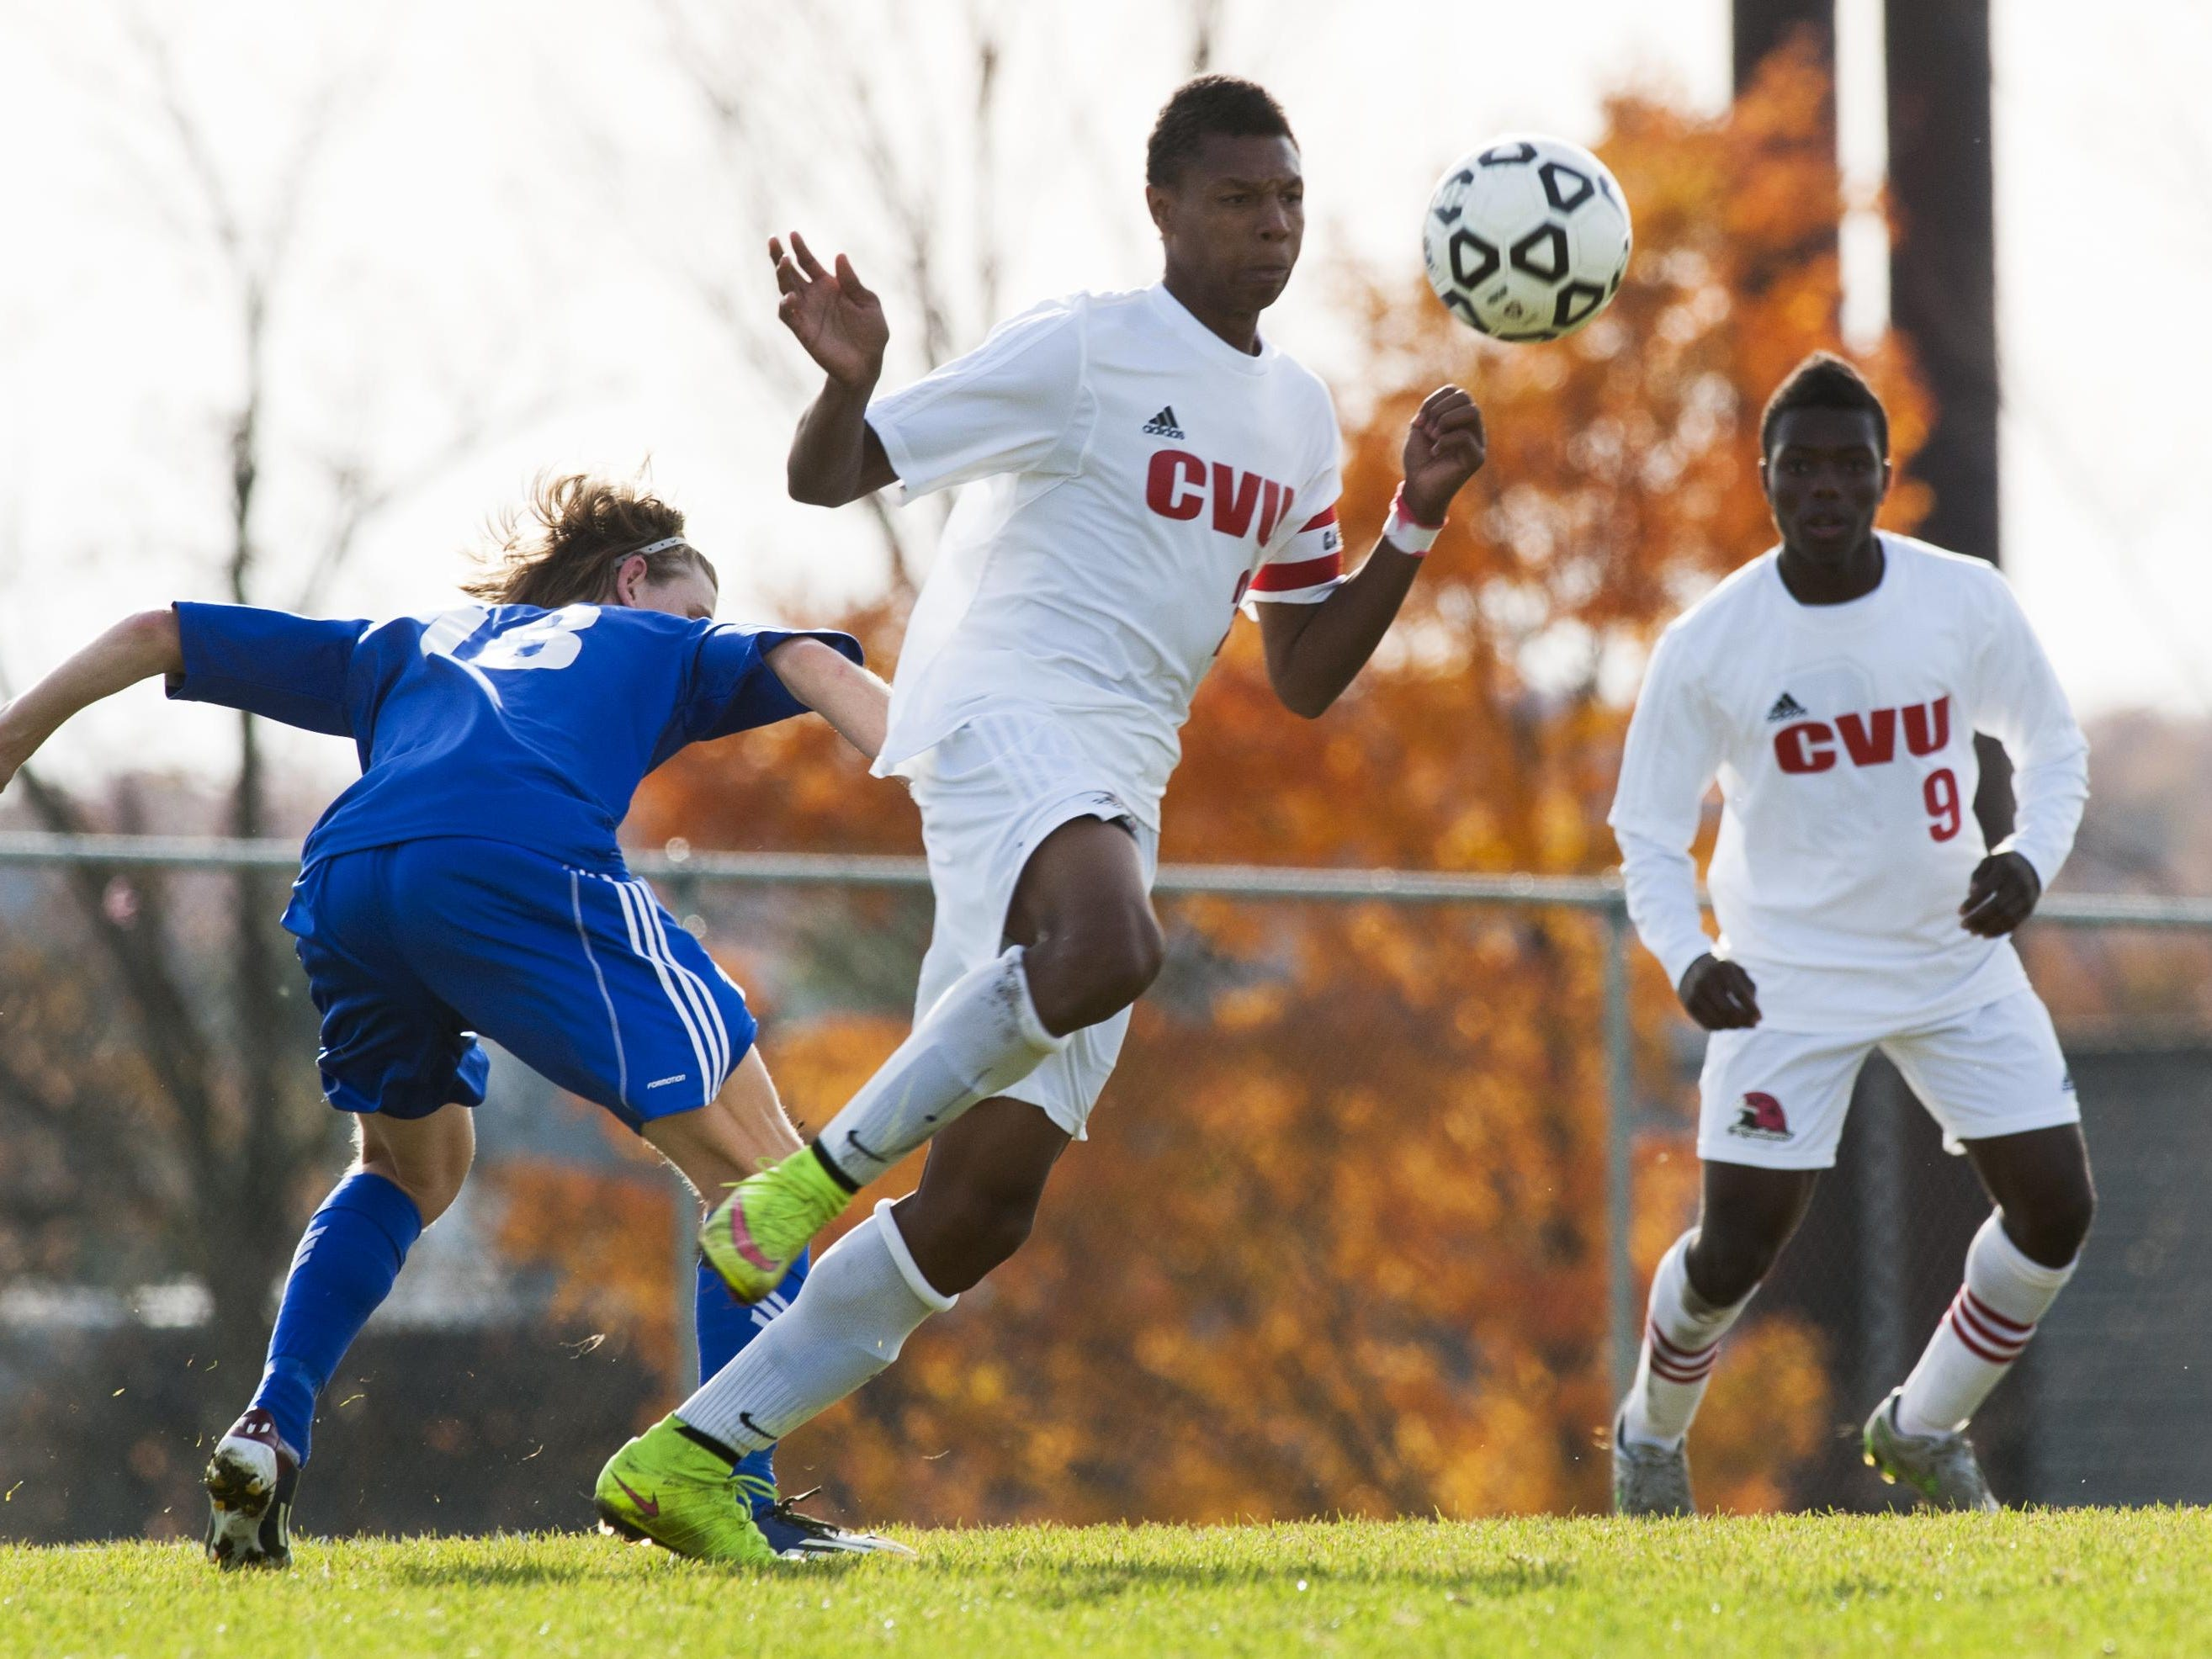 CVU's Trey Tomasi (25) plays the ball during a high school boys soccer semifinal against Mount Anthony earlier last week.